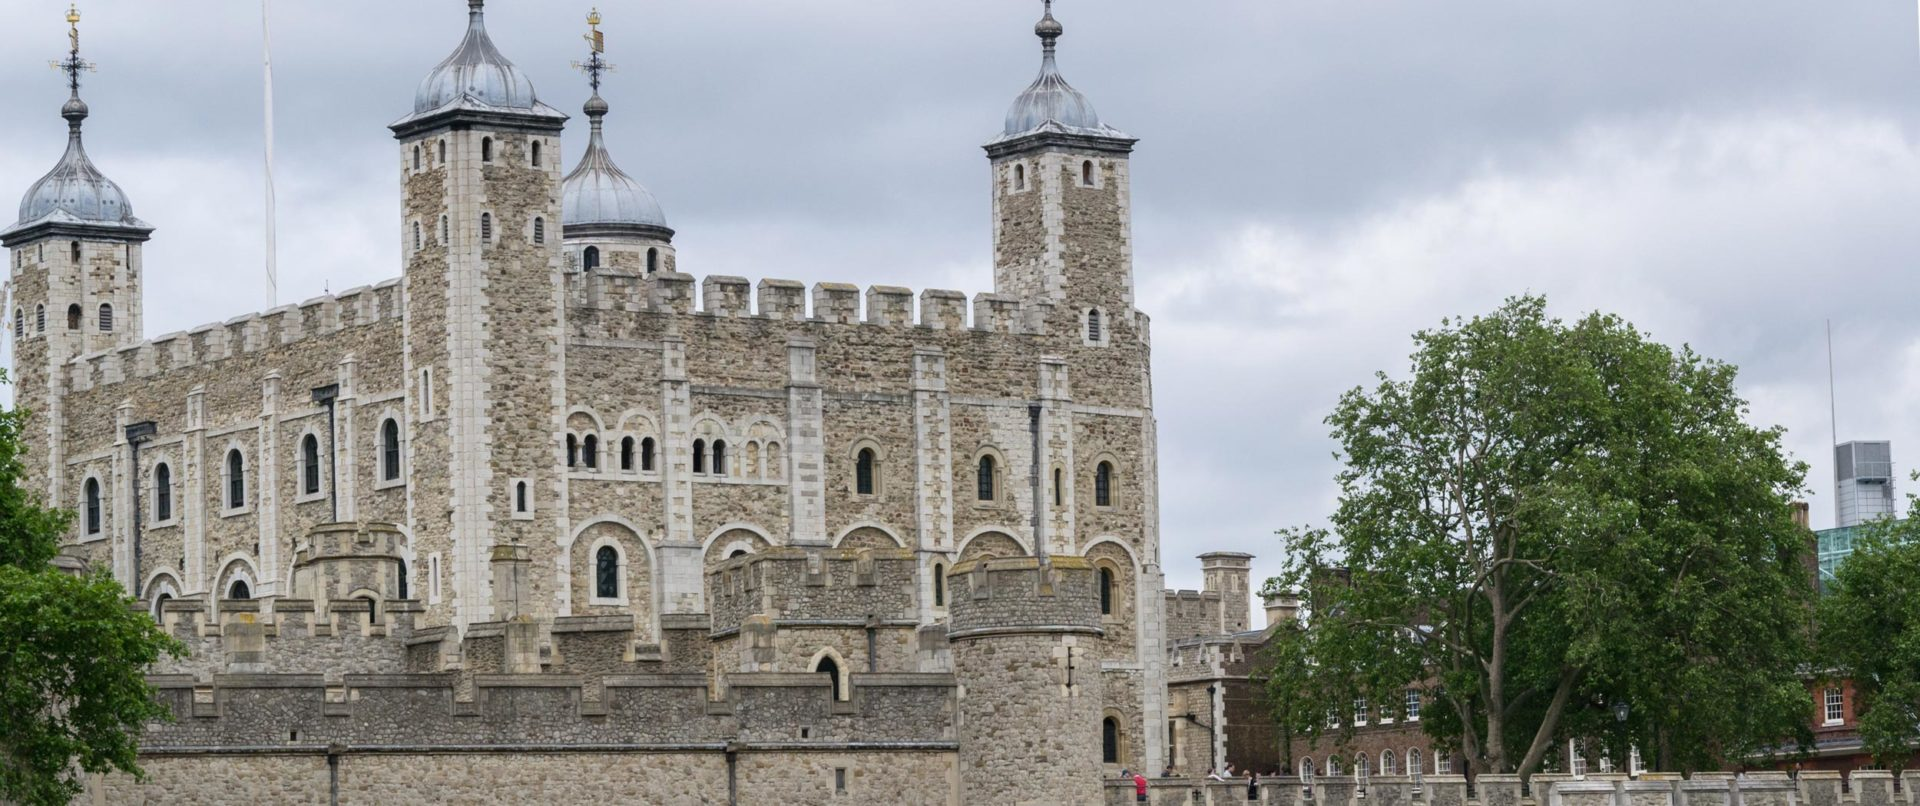 Tower-of-london-treasure-hunt-family-tour